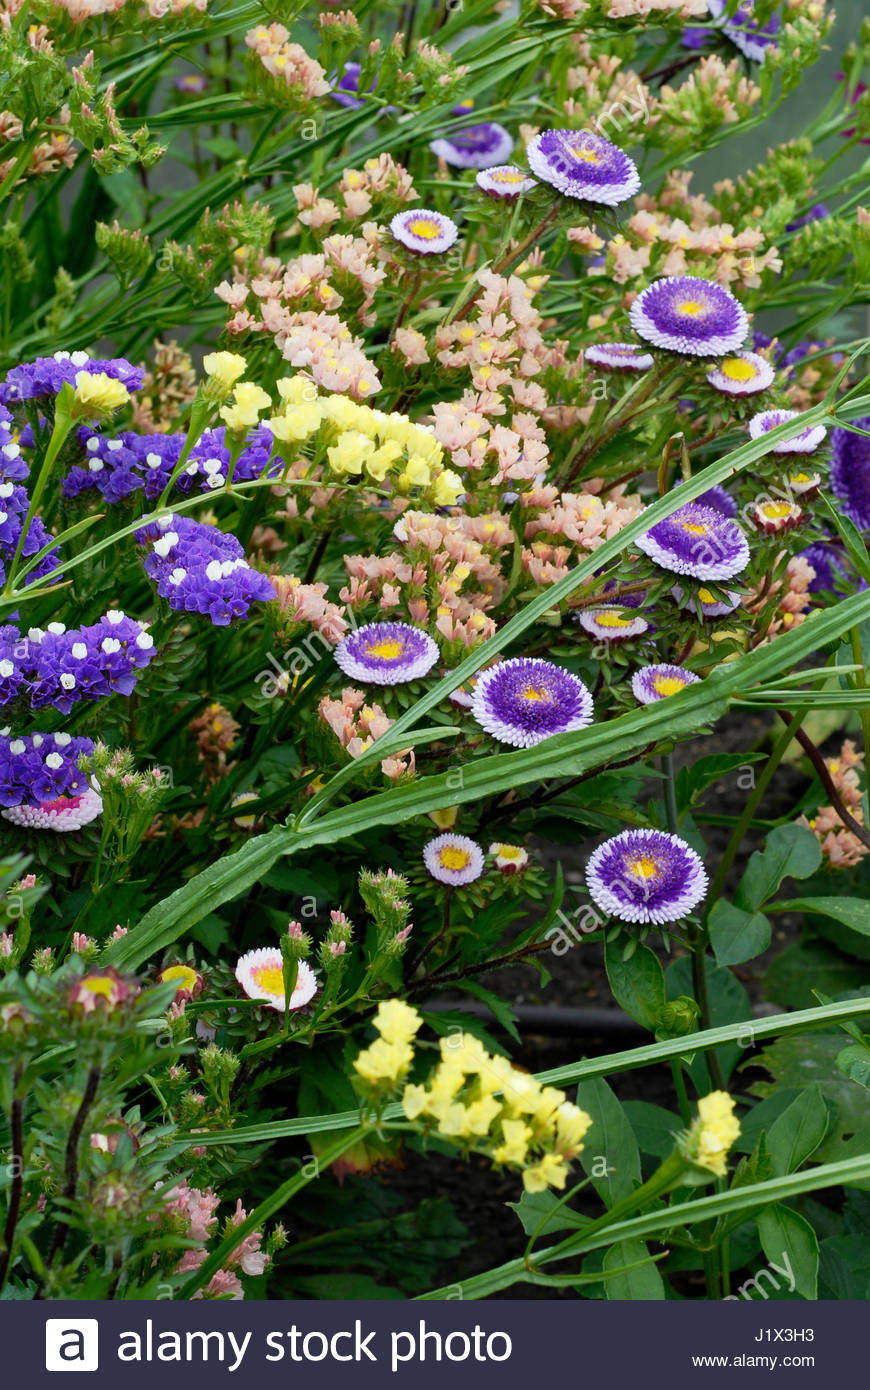 FLOWERS IN THE RAISED BED FOR CUT FLOWERS IN THE MODEL ALLOTMENT  INCLUDE LIMONIUM SINUATUM ''FOREVER MIXED'' - Stock Image